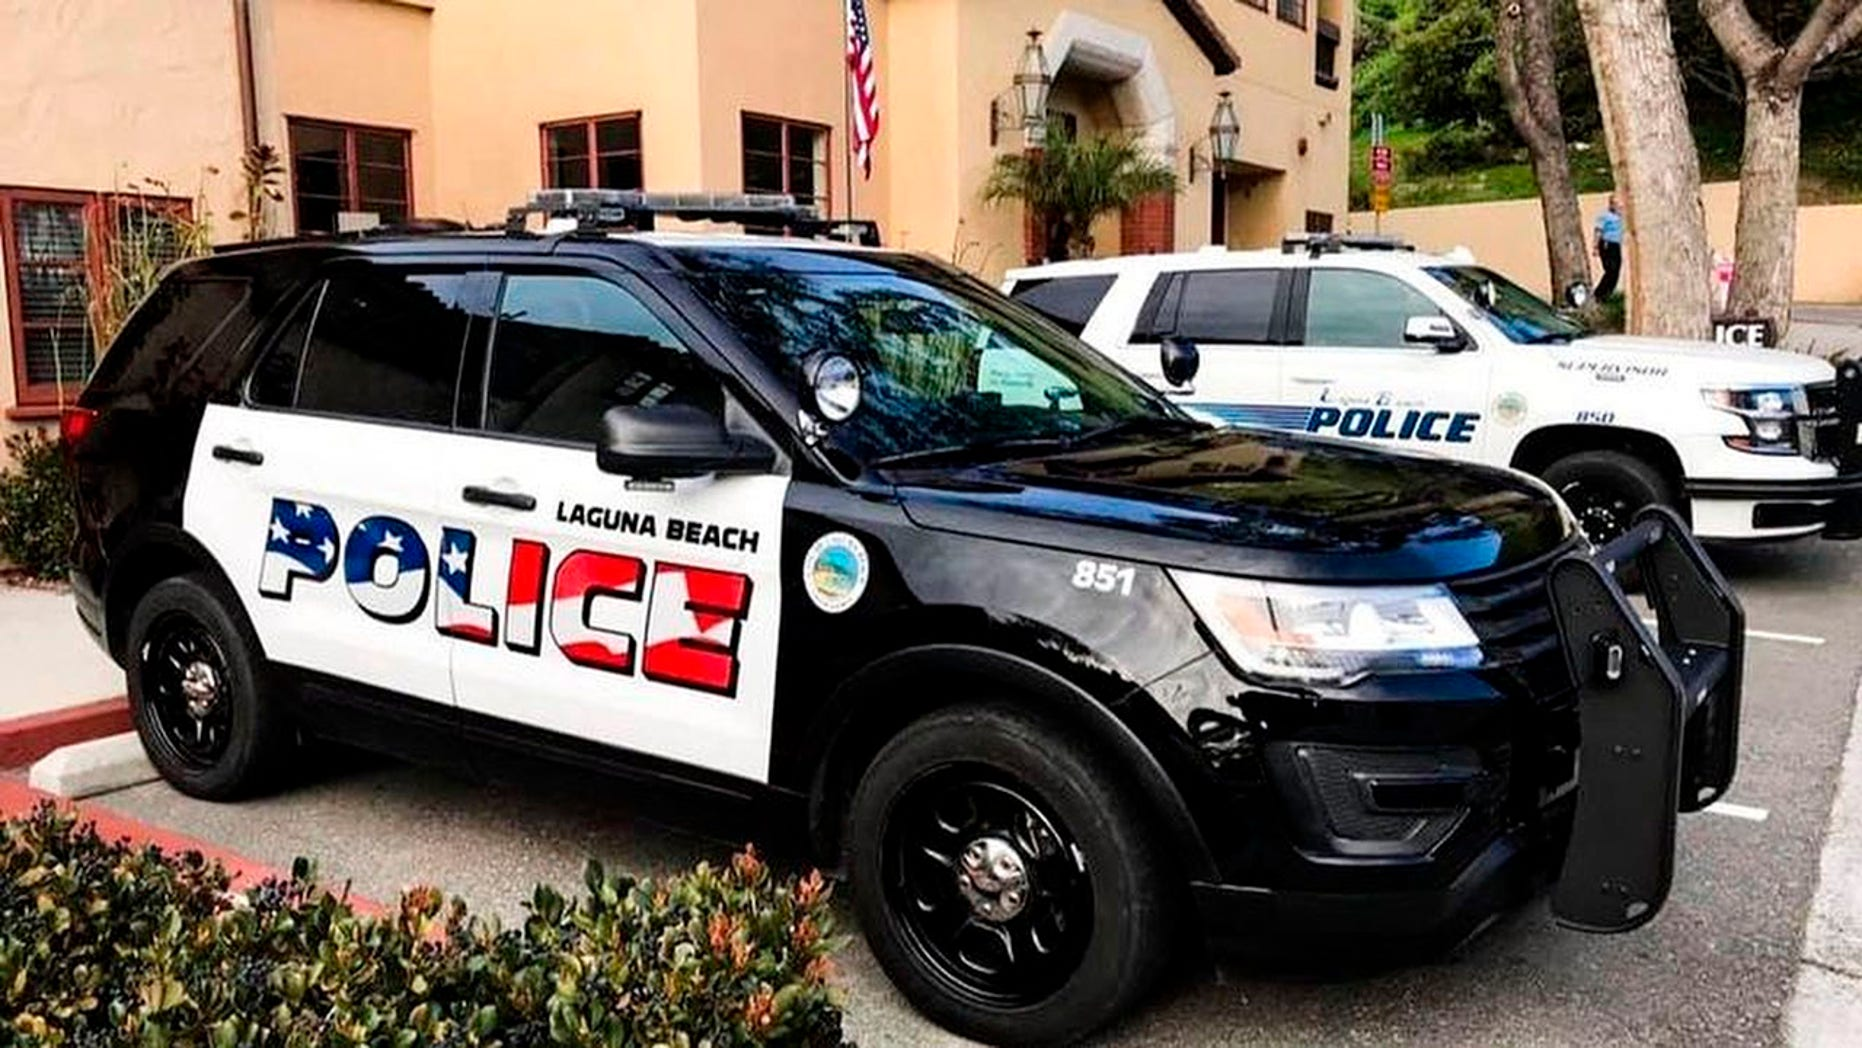 This undated photo of the Laguna Beach Police Station shows their newly decorated SUV police patrol vehicles in Laguna Beach, California. Seven of the department's eleven vehicles have already been painted, the department said in a text to The Los Angeles Times.